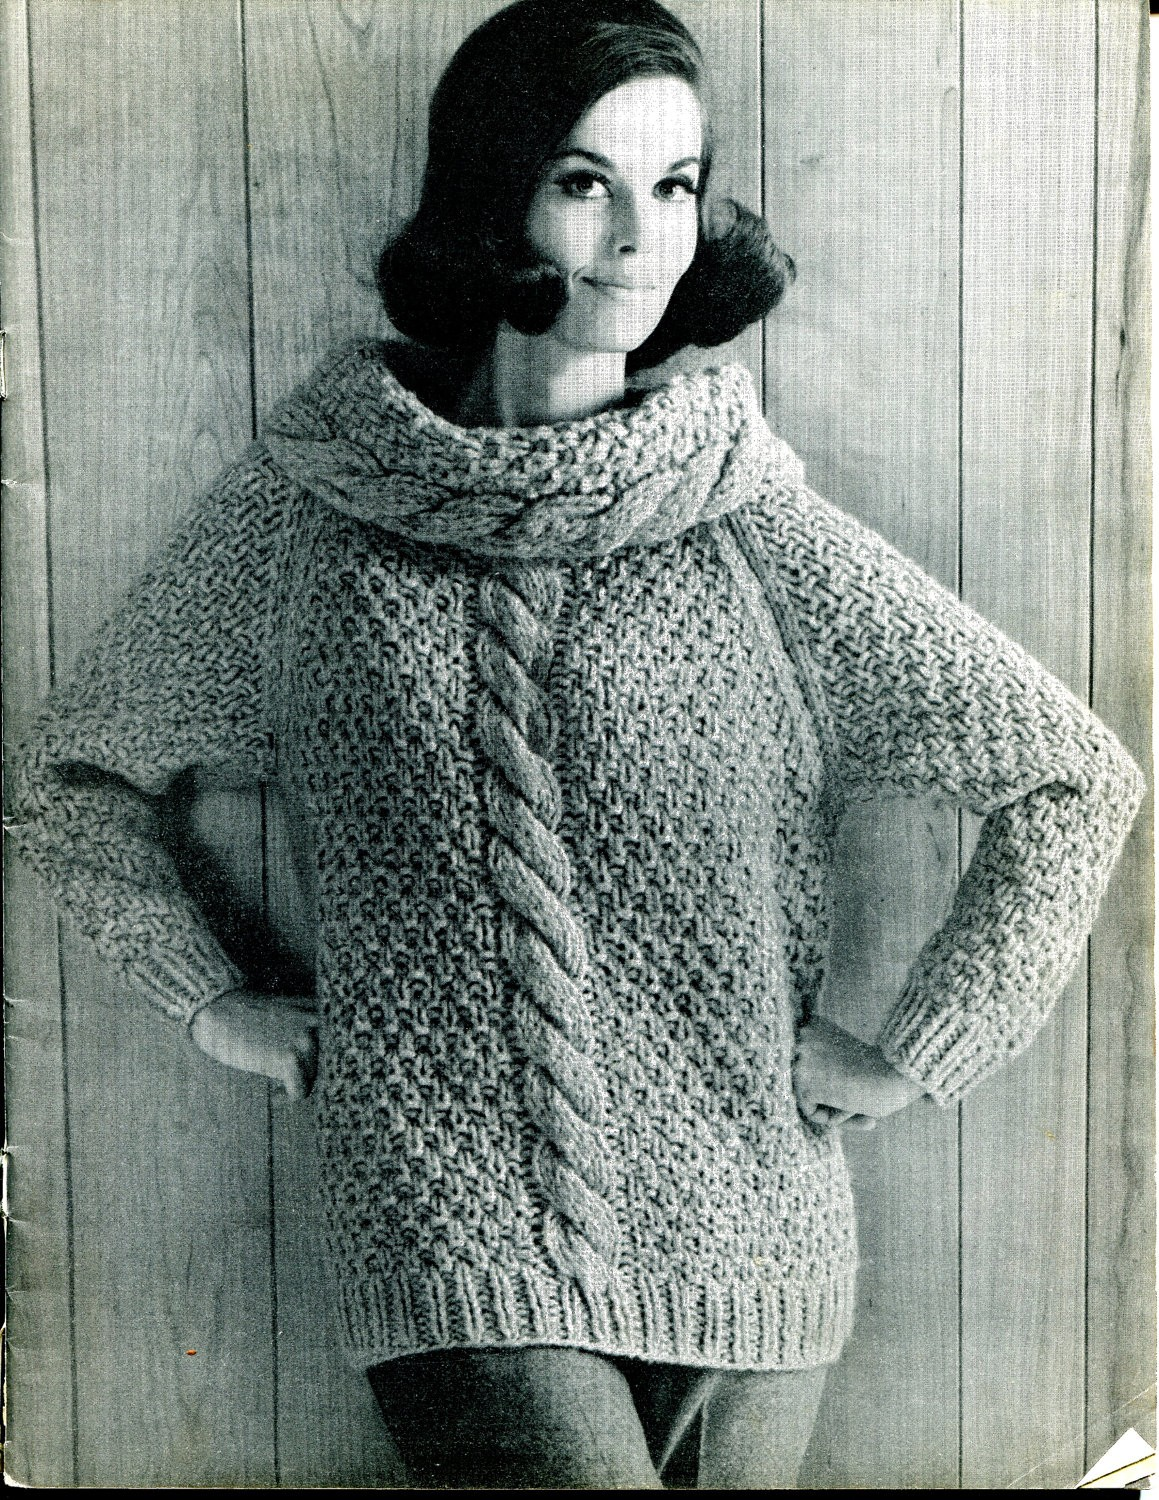 Knitting Patterns For Chunky Wool Sweaters : Cable Knit Sweater Patterns A Knitting Blog